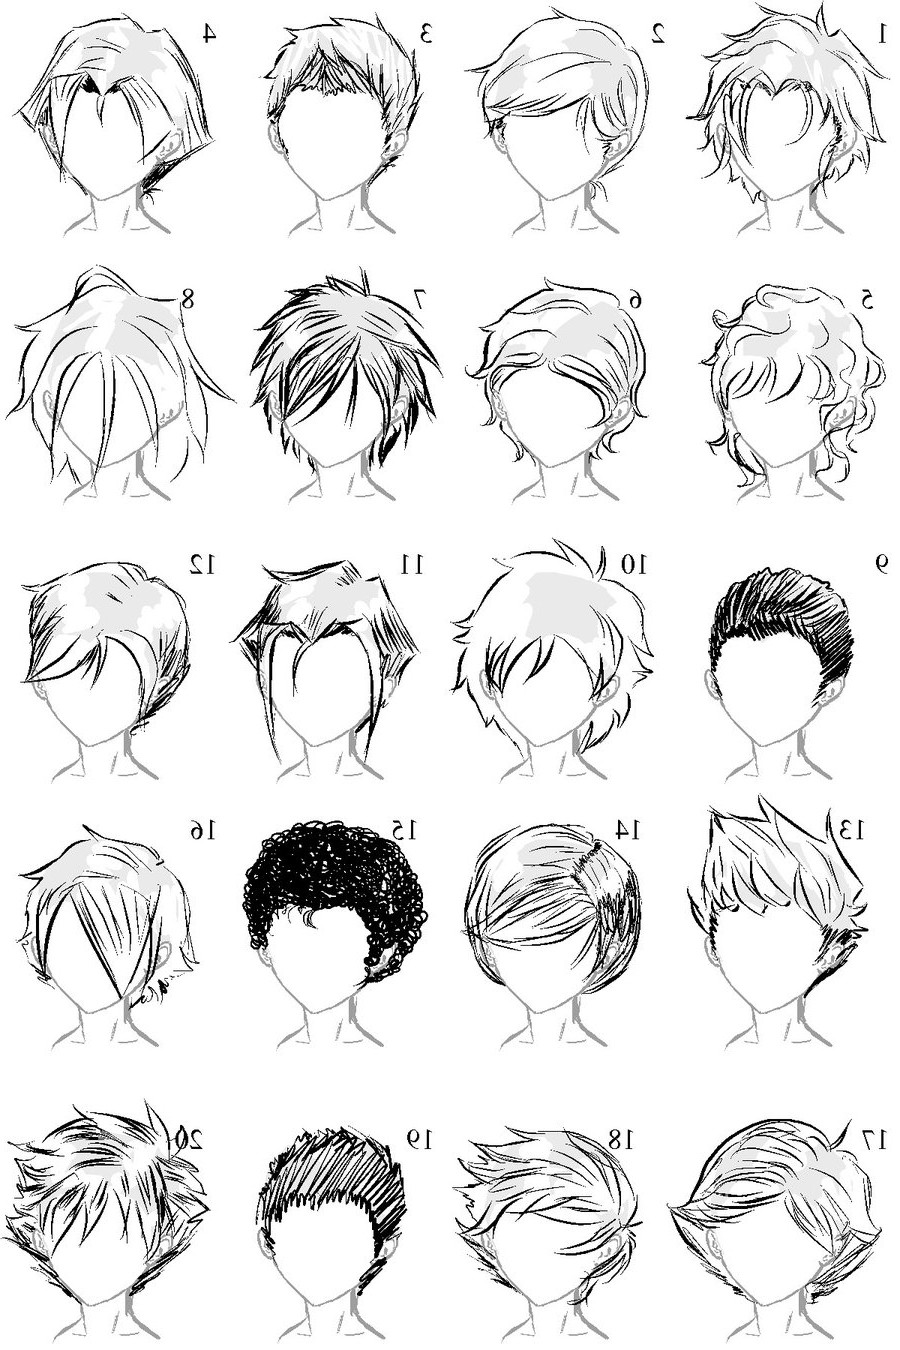 Drawings Of Anime Hairstyles  Boy Hairstyles Drawing HairStyles